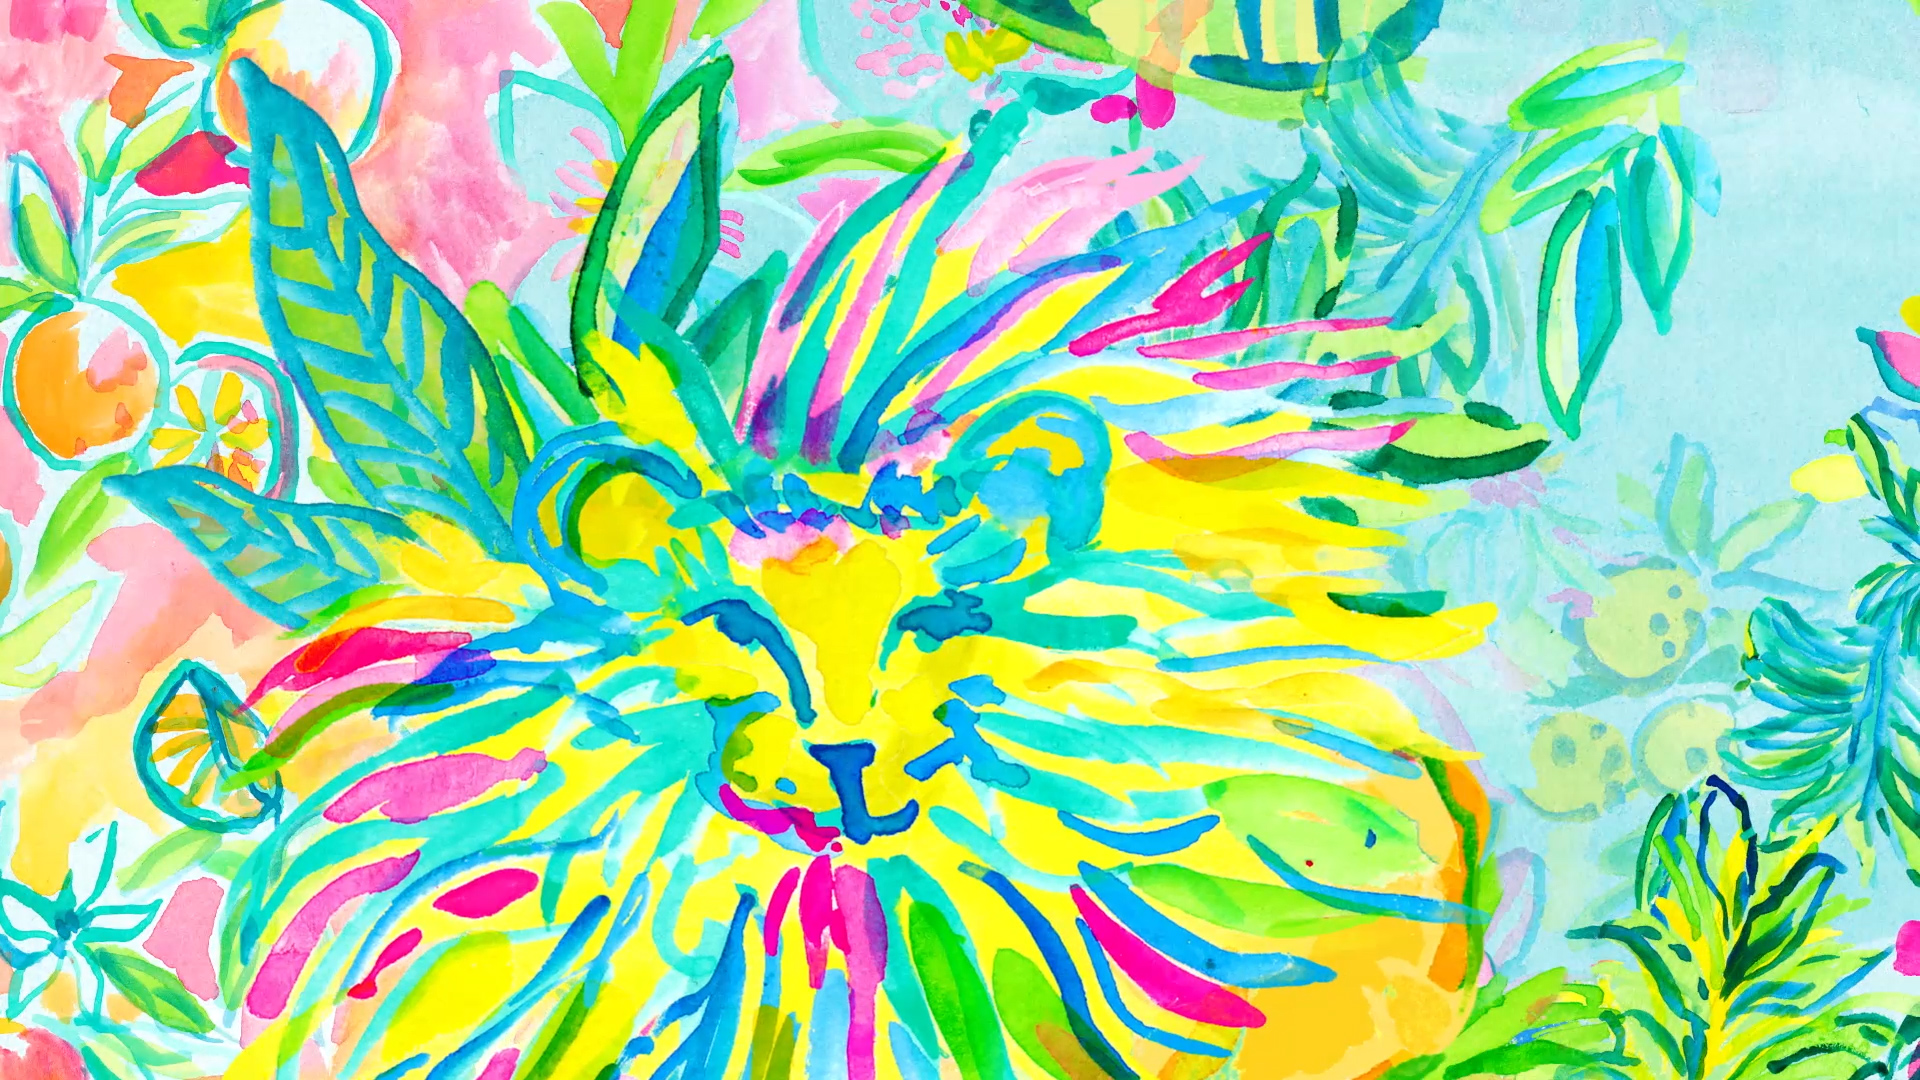 LillyPulitzer_FINAL_190415c.00_01_09_08.Still015